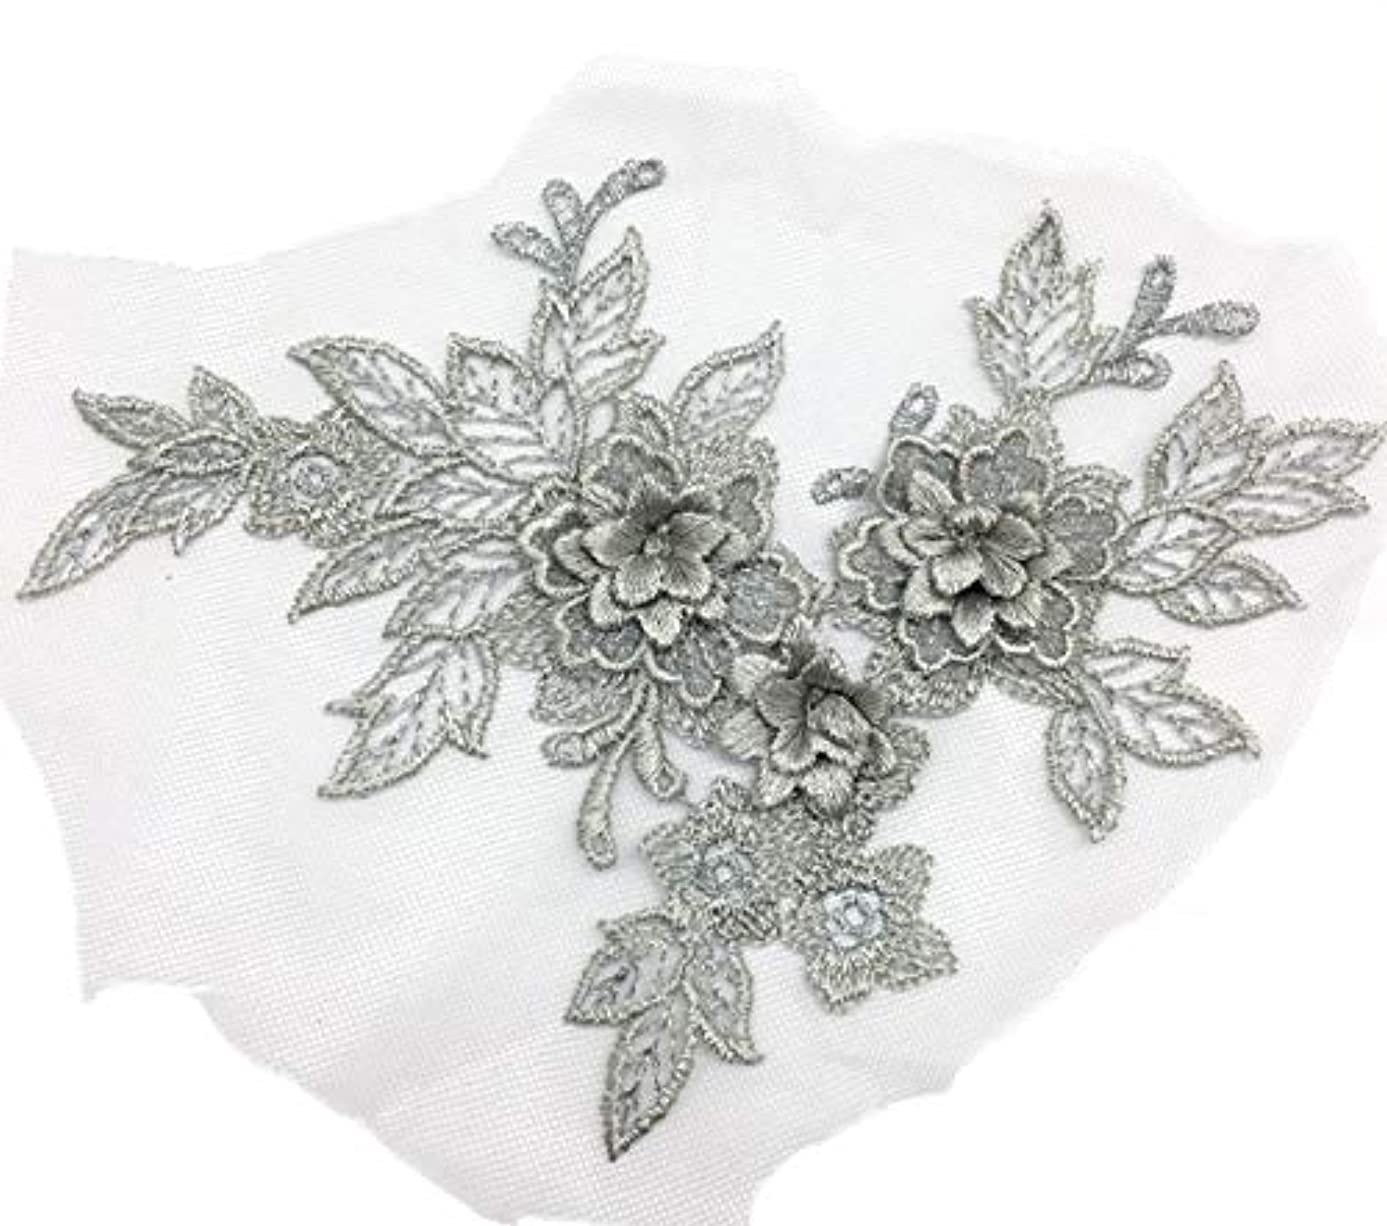 PEPPERLONELY 2PC 3D Gray Flower Embroidered Lace Appliques Handmade Wedding Dress Decoration DIY Sewing Craft, 19 x 15cm